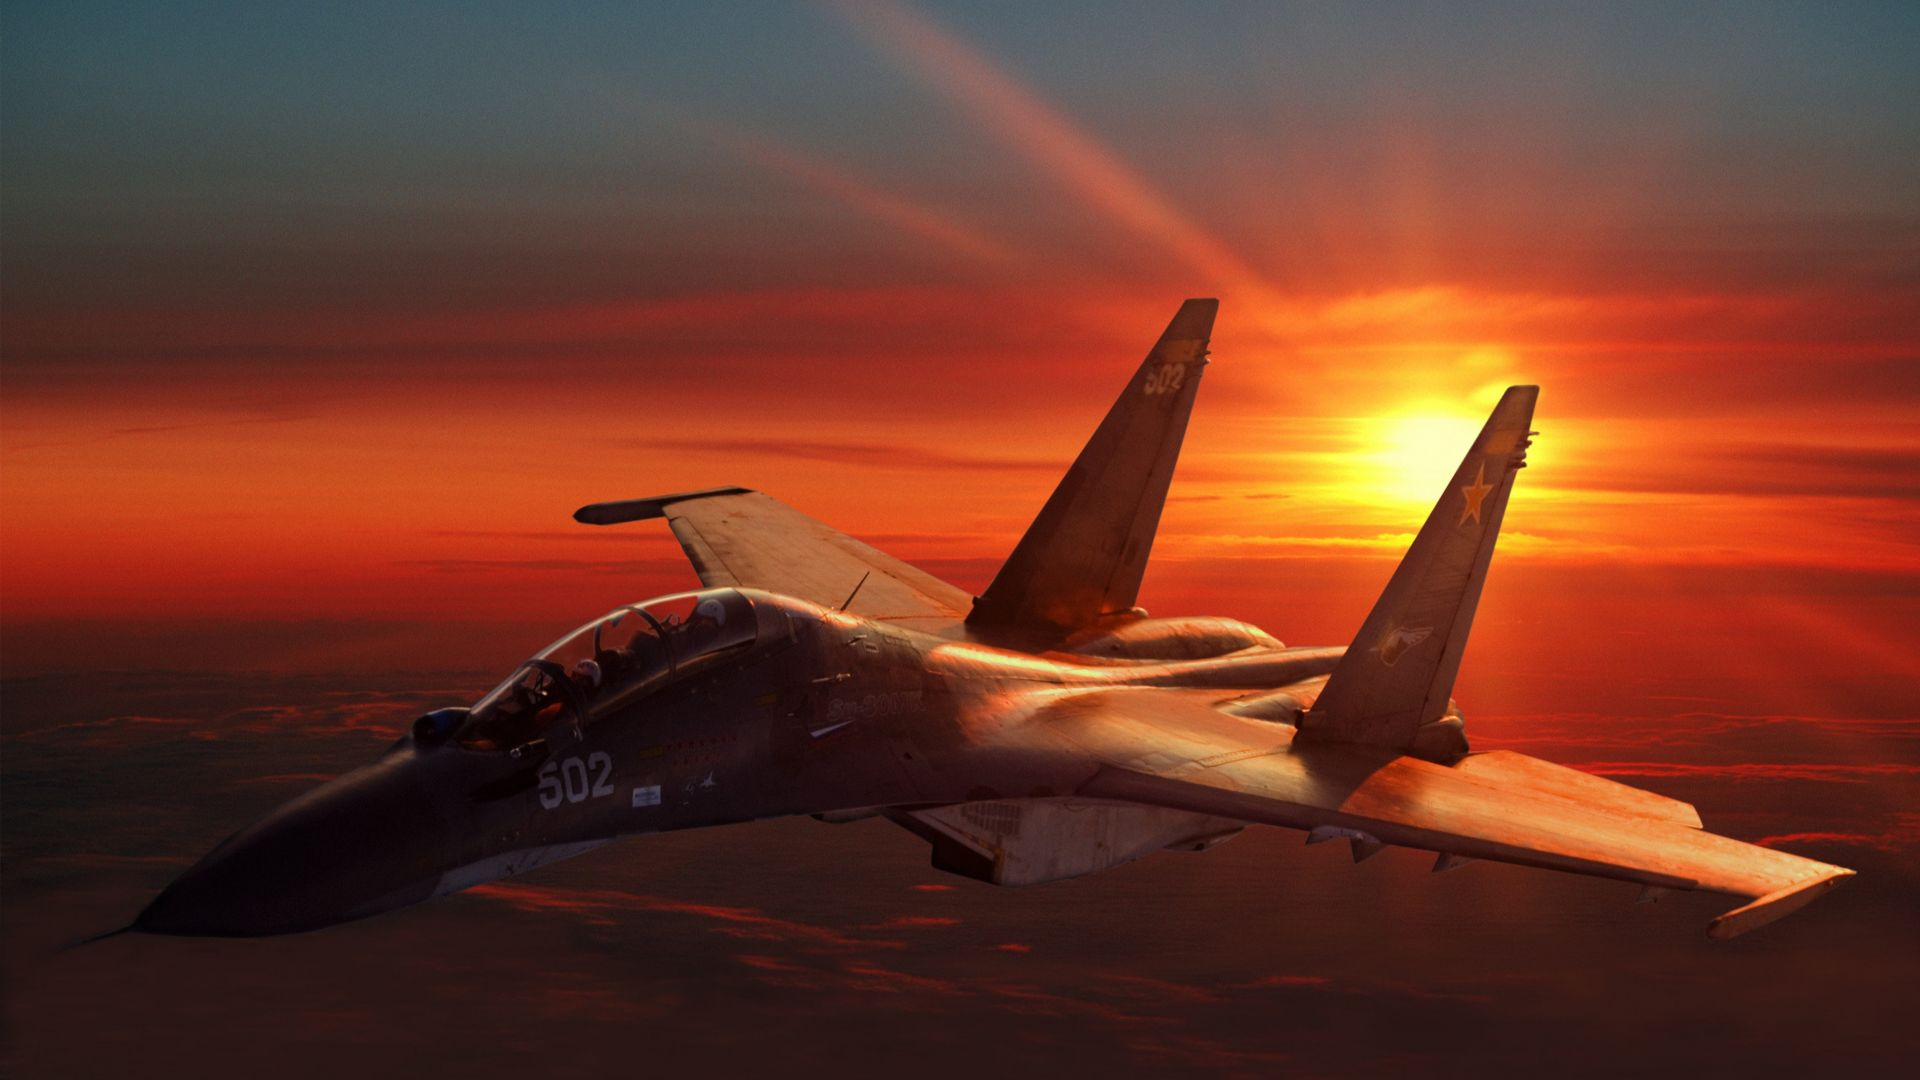 СУ-30, штурмовик, ВВС России, закат, армия России, Sukhoi Su-30, fighter aircraft, sunset, Russian Army